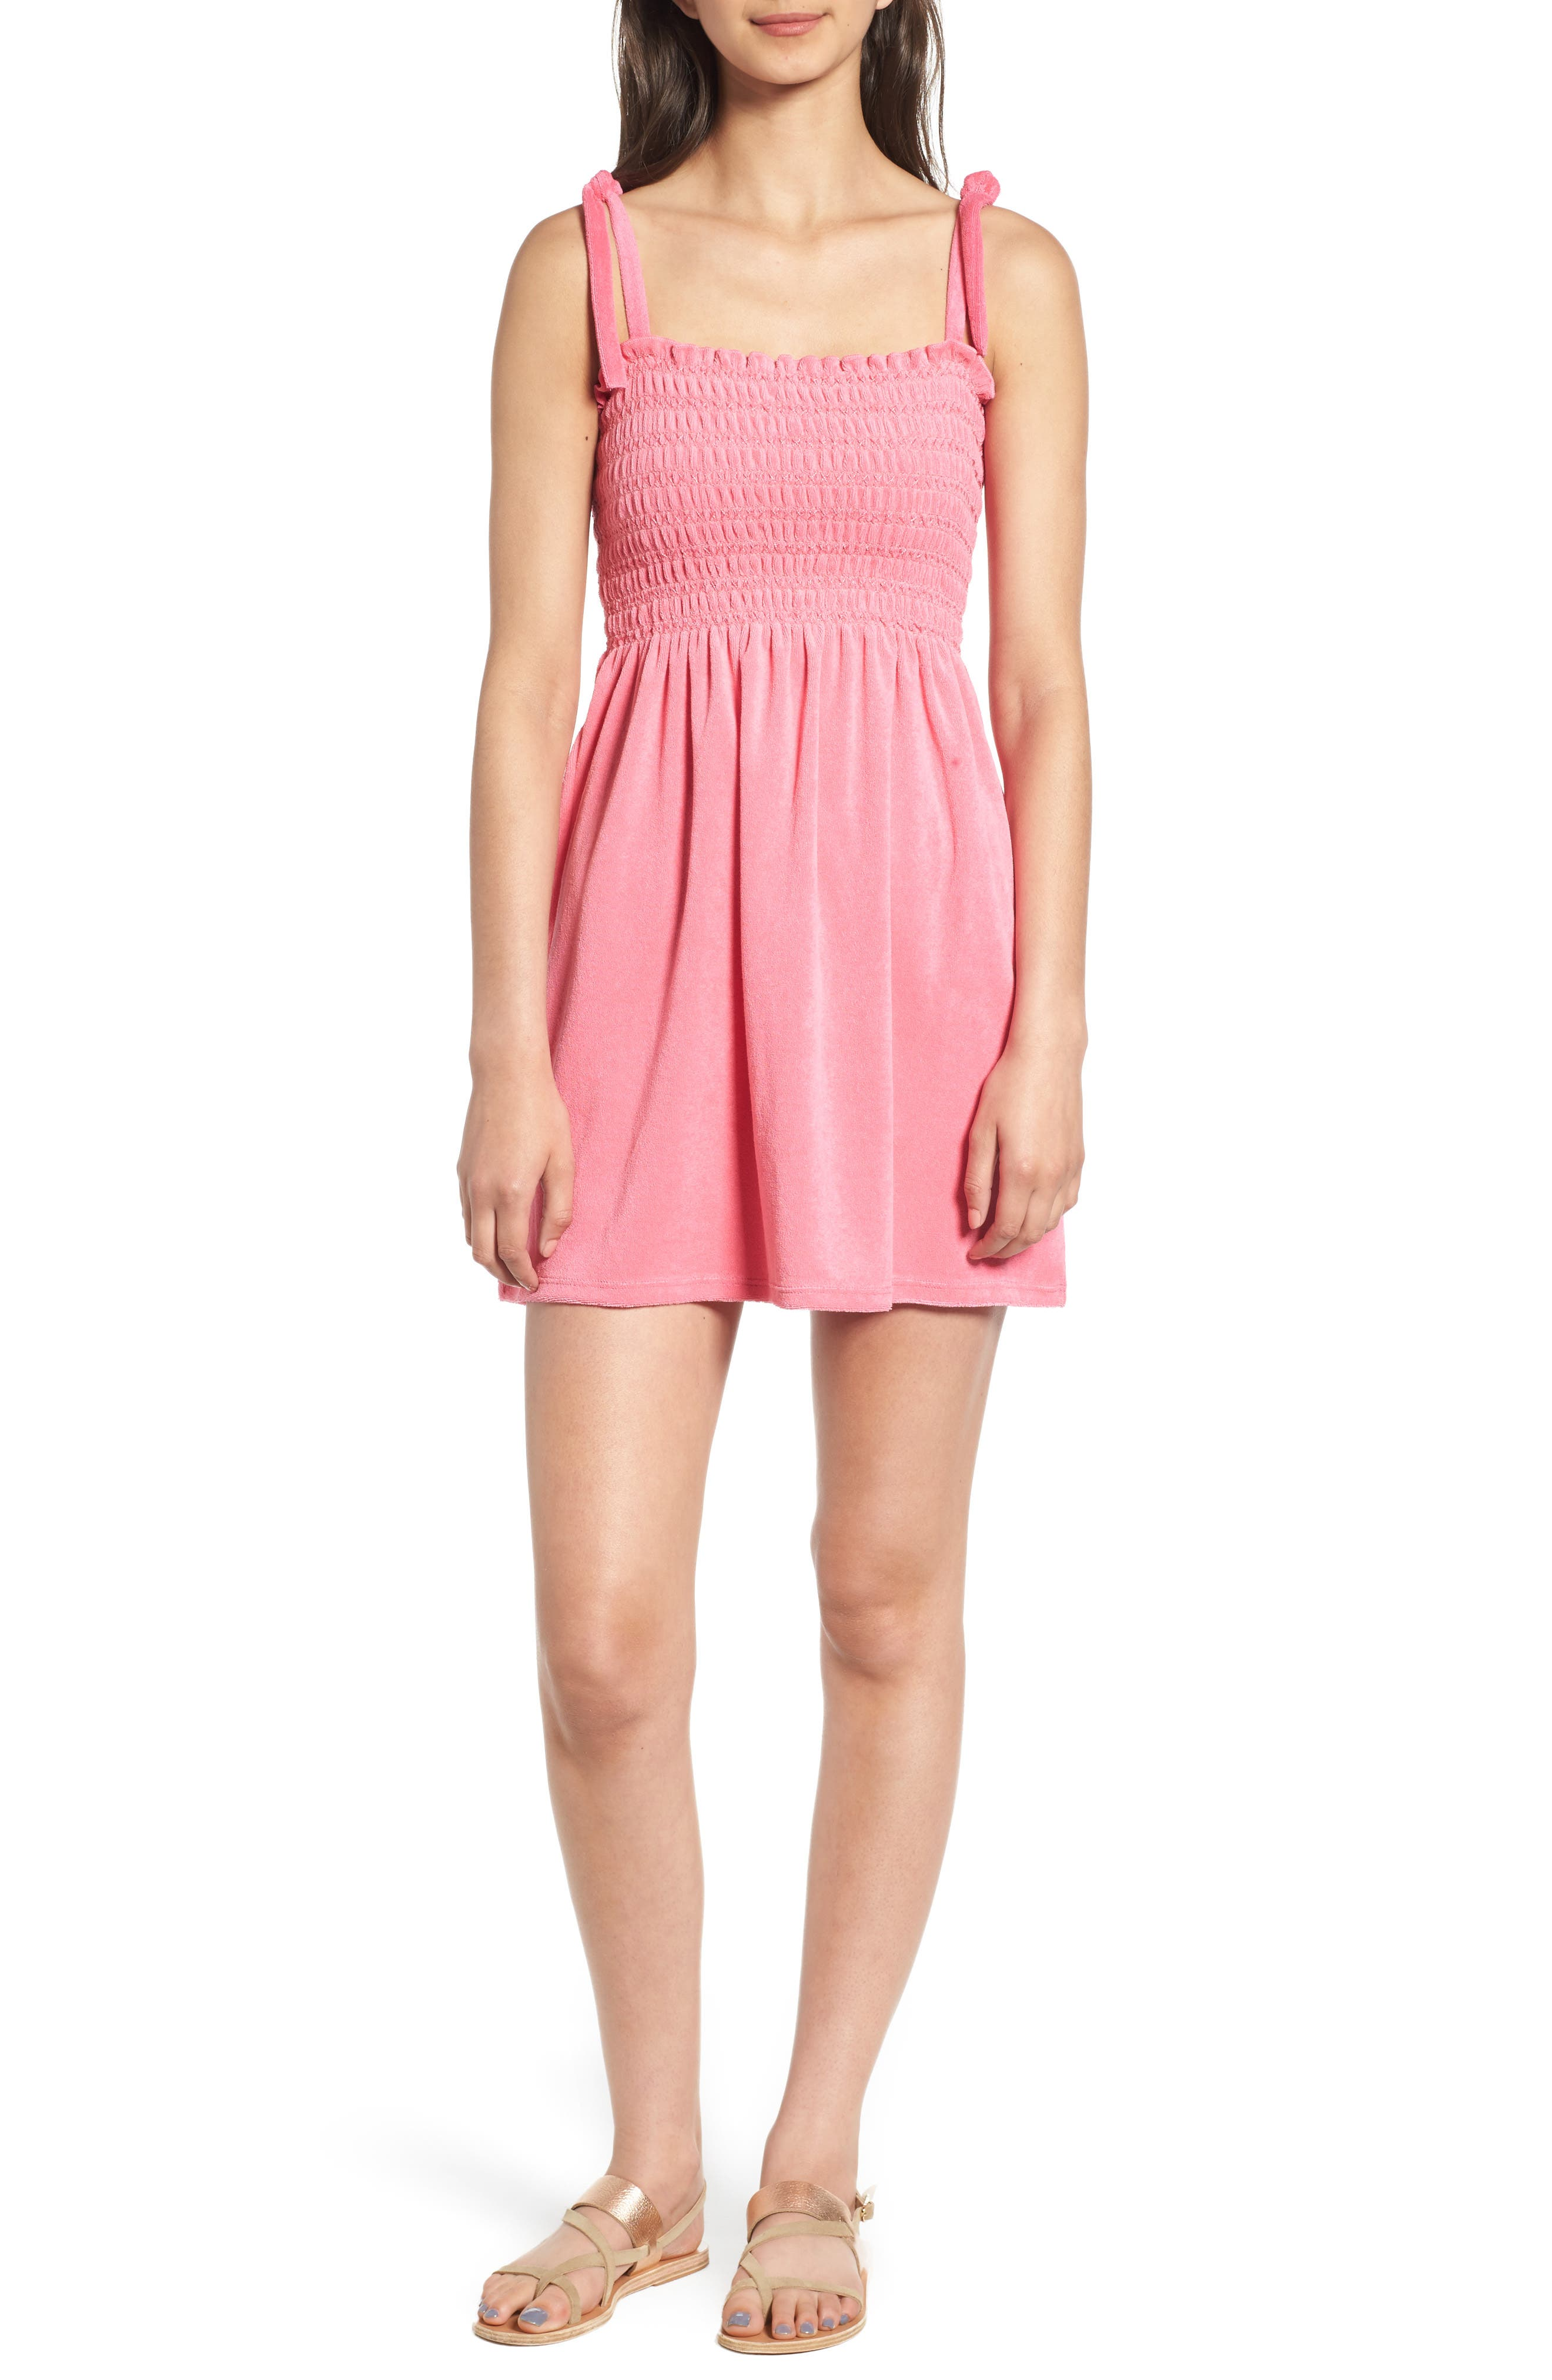 JUICY COUTURE Venice Beach Microterry Smocked Dress